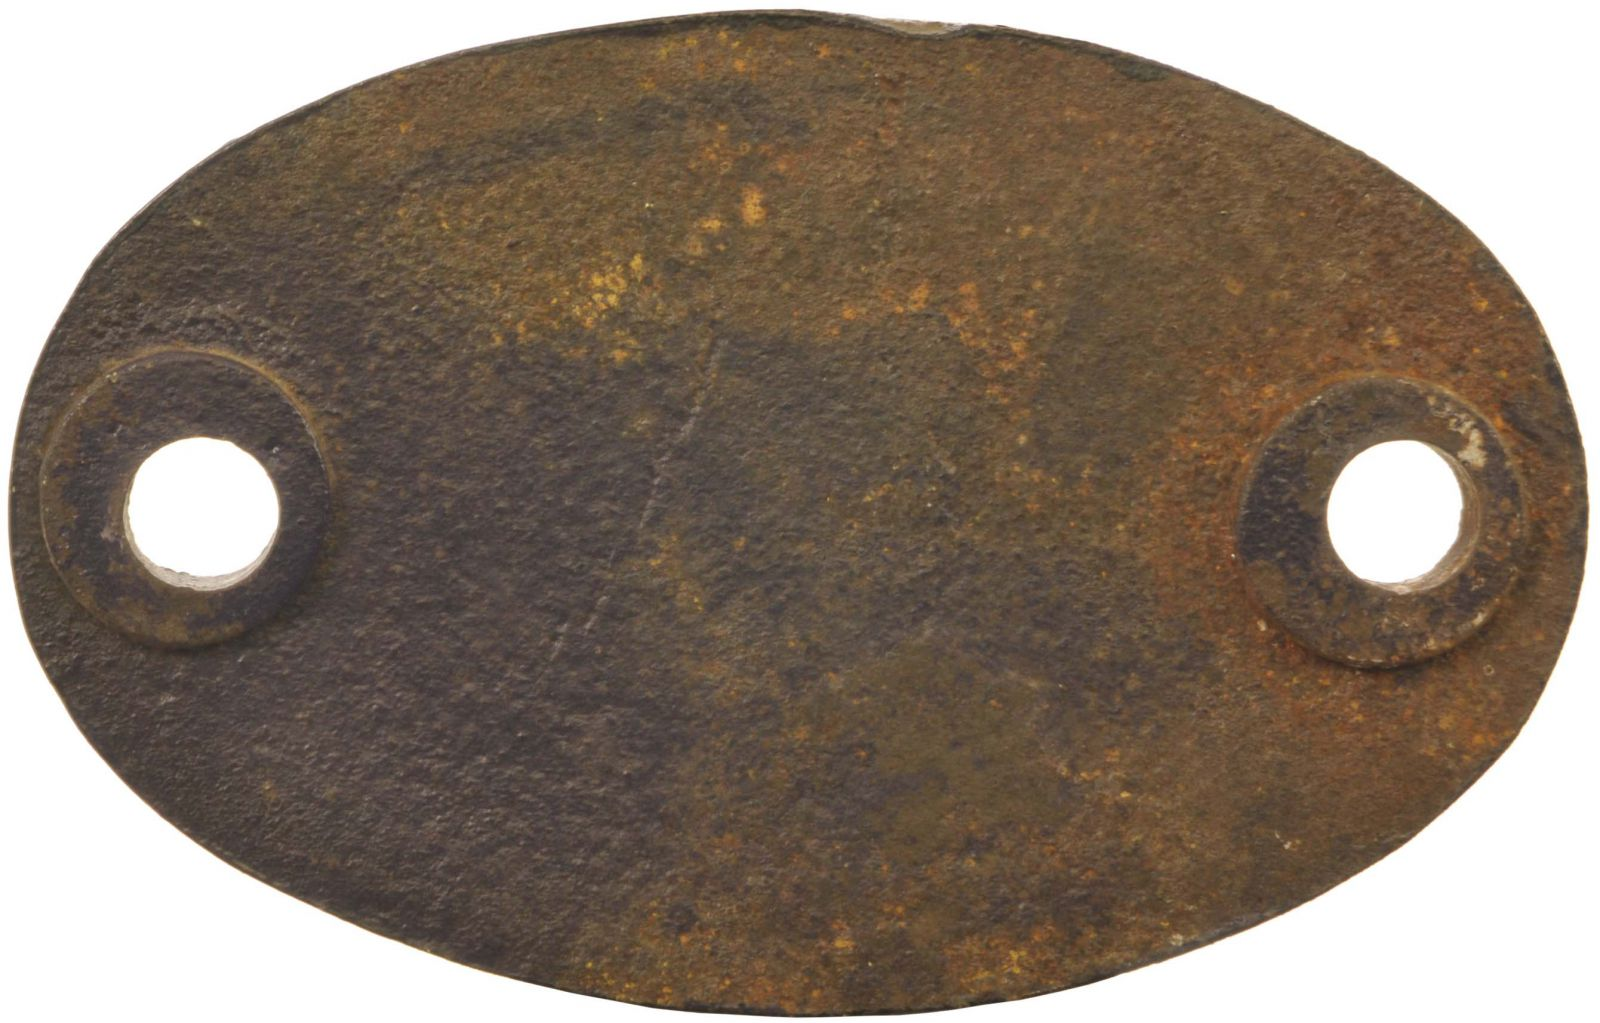 Lot 22 - Railway Locomotive Shedplates, 1A: A shedplate 1A Willesden (1935 to September 1965). This ex LNWR